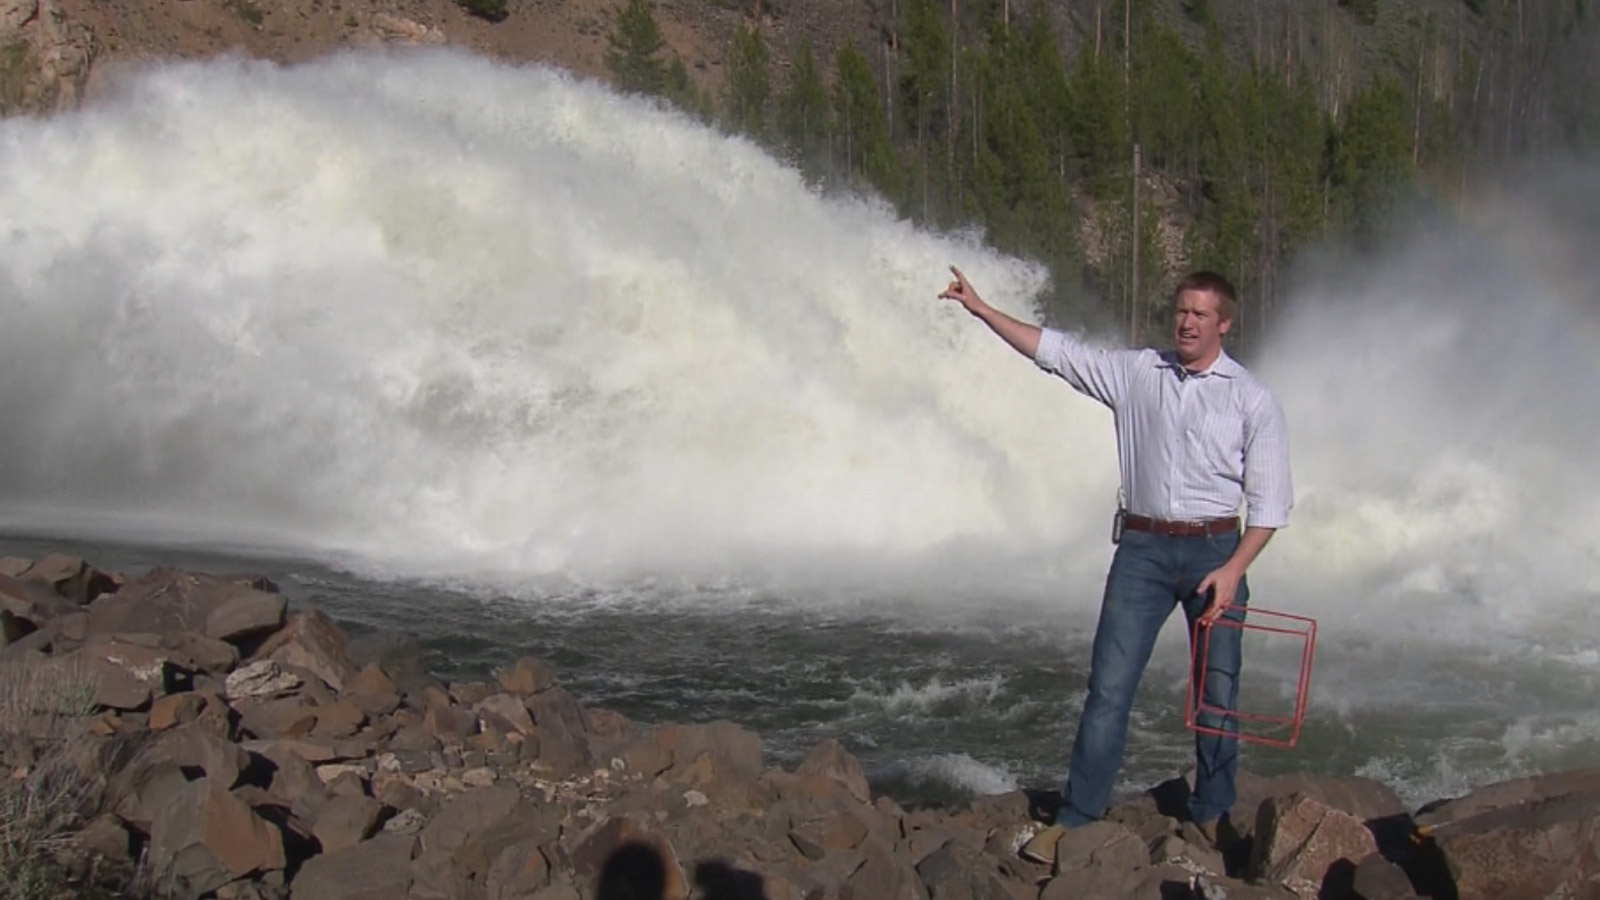 Meteorologist Justin McHeffey in the Mobile Weather Lab shows the runoff from Lake Granby (credit: CBS)